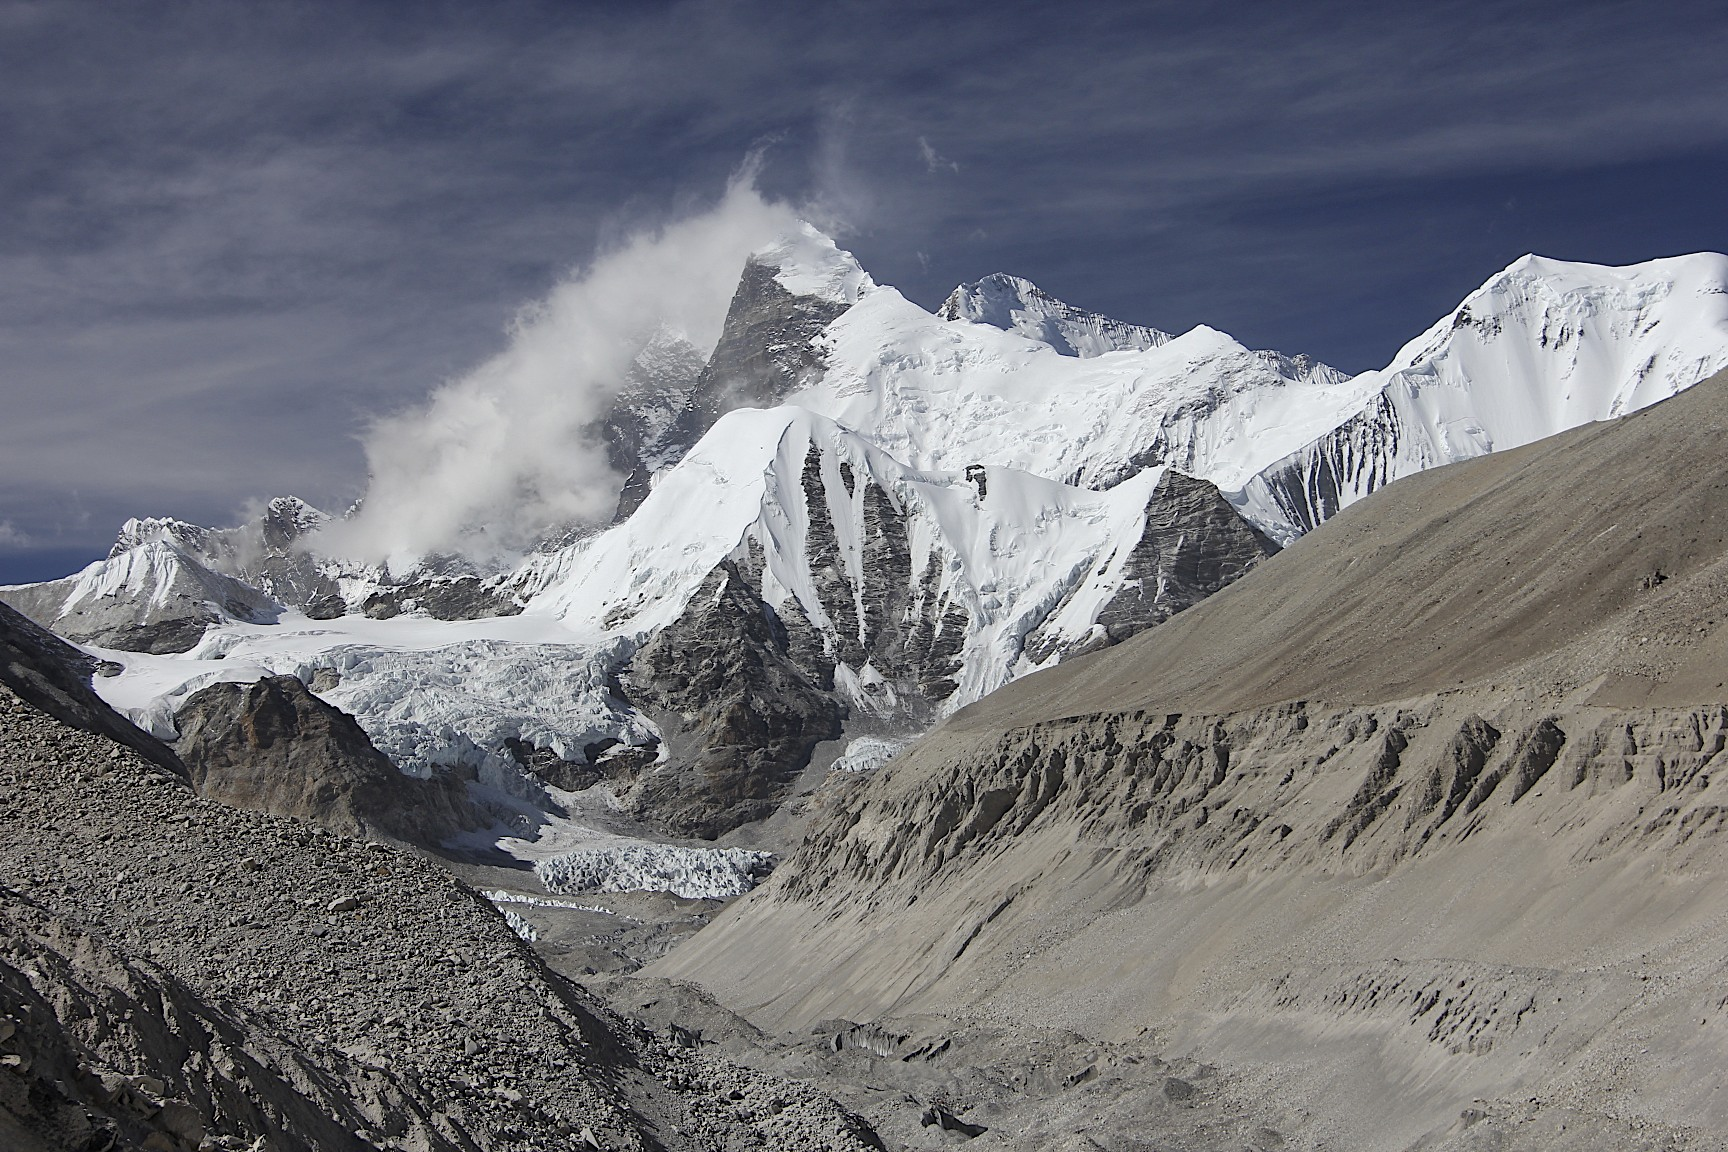 Lhotse/Everest massif from the Sandy camp